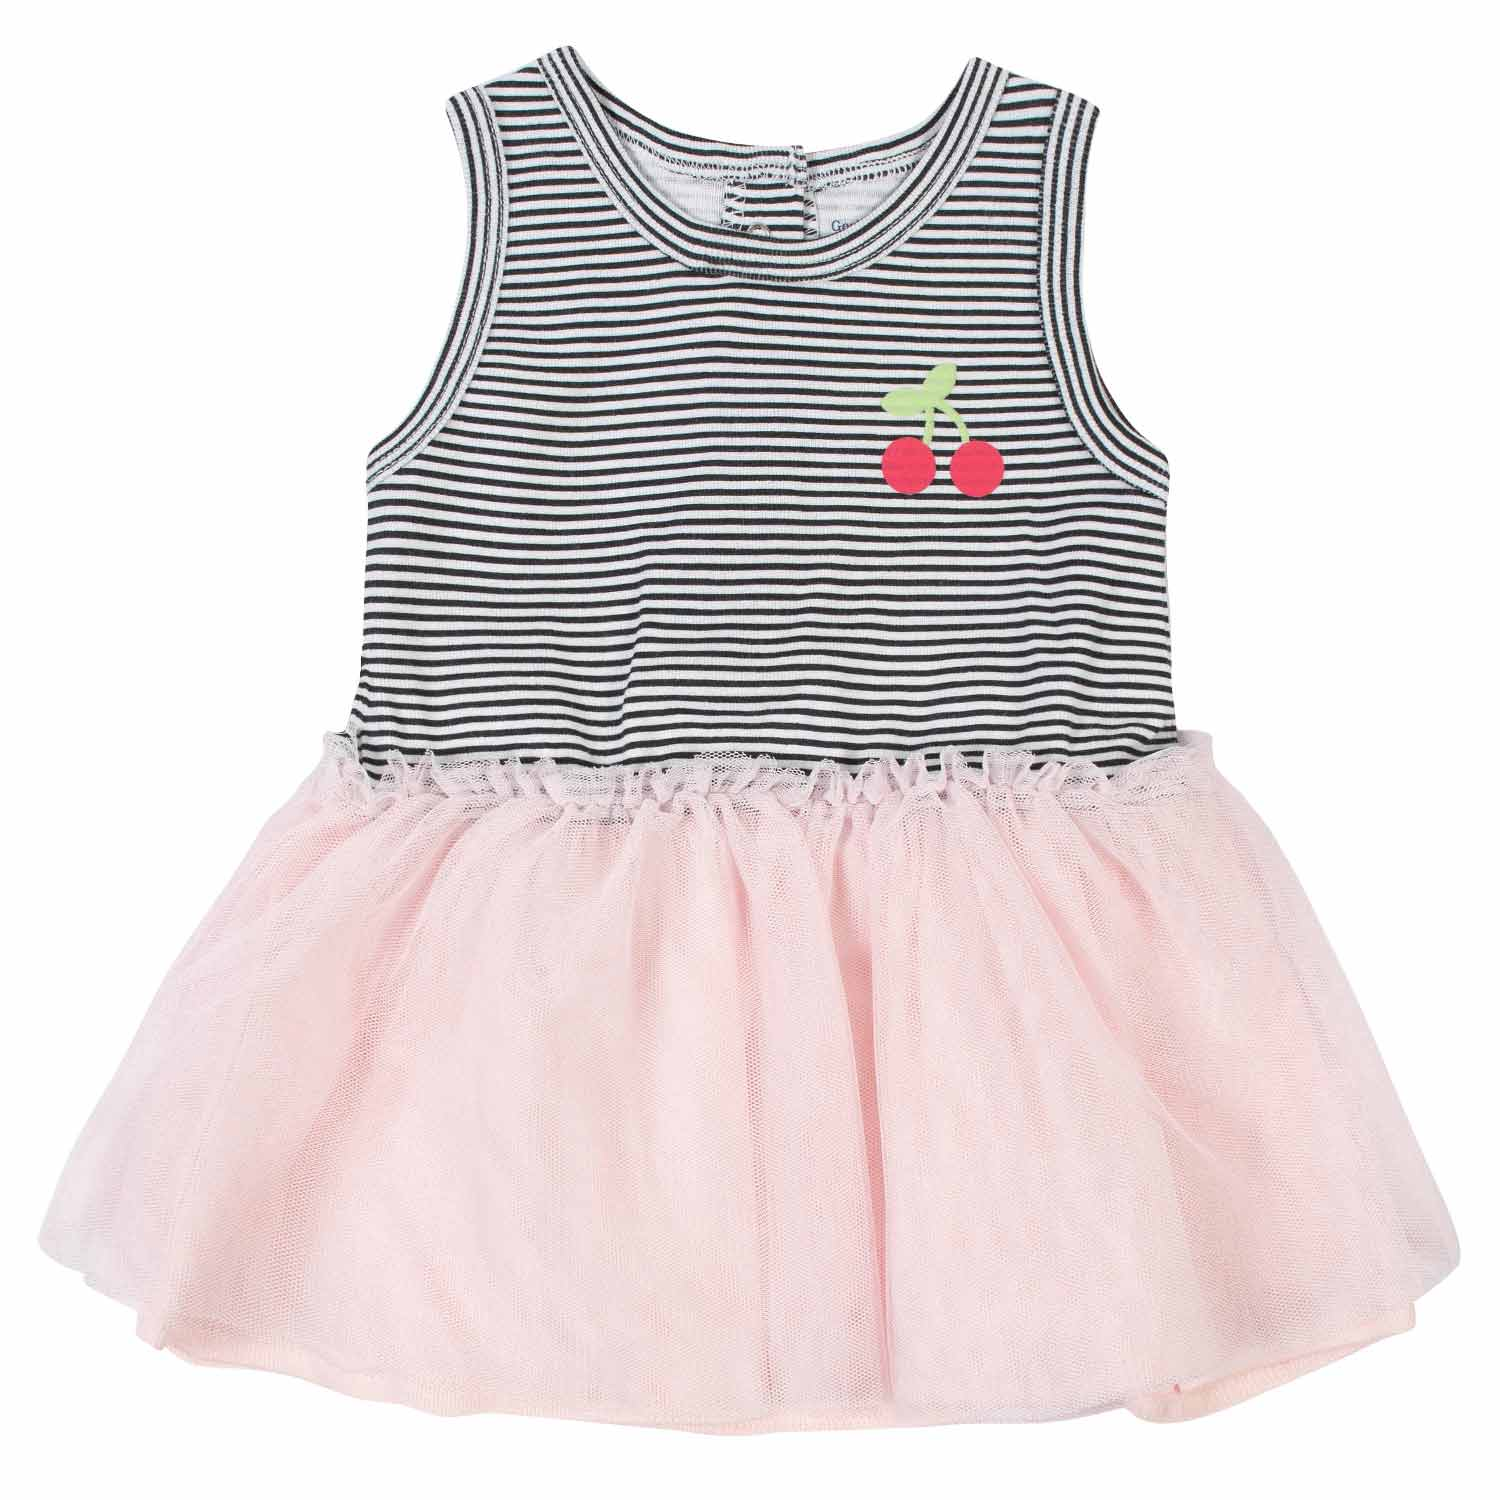 2-Piece Baby Girls Cherries Dress Set-Gerber Childrenswear Wholesale